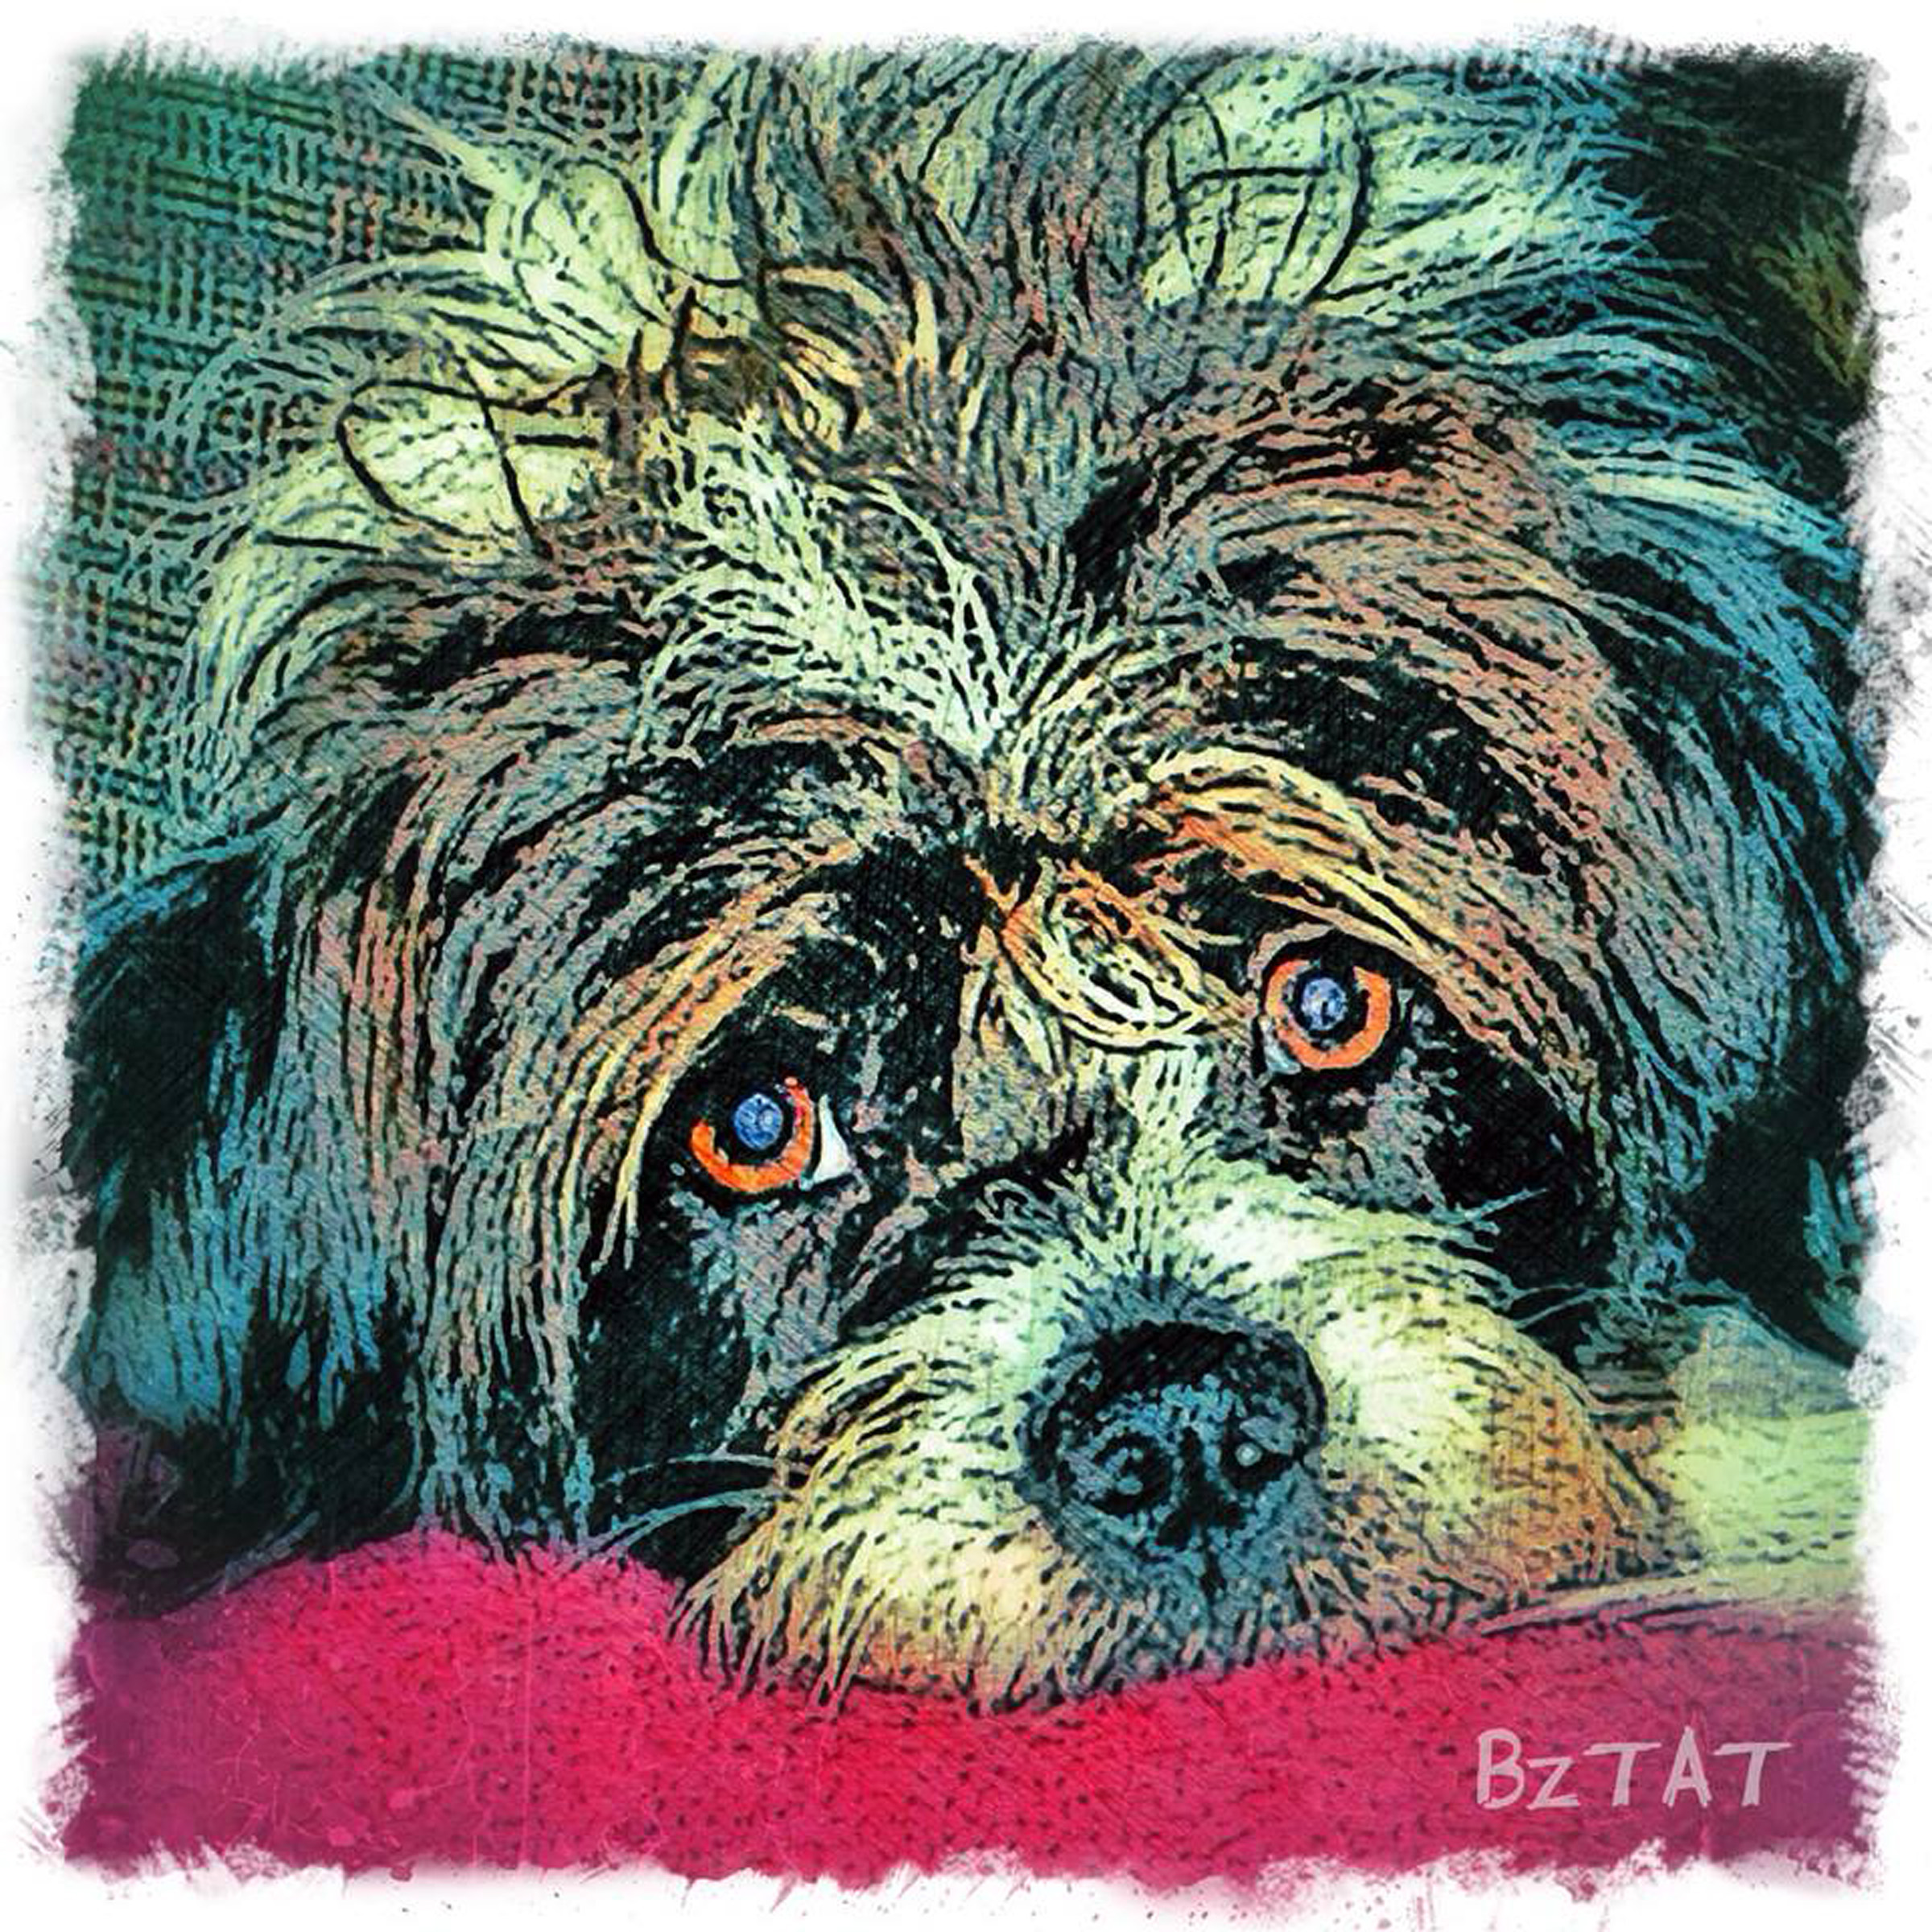 2-Digital-pet-portrait-dog-art-calendar-BZTAT